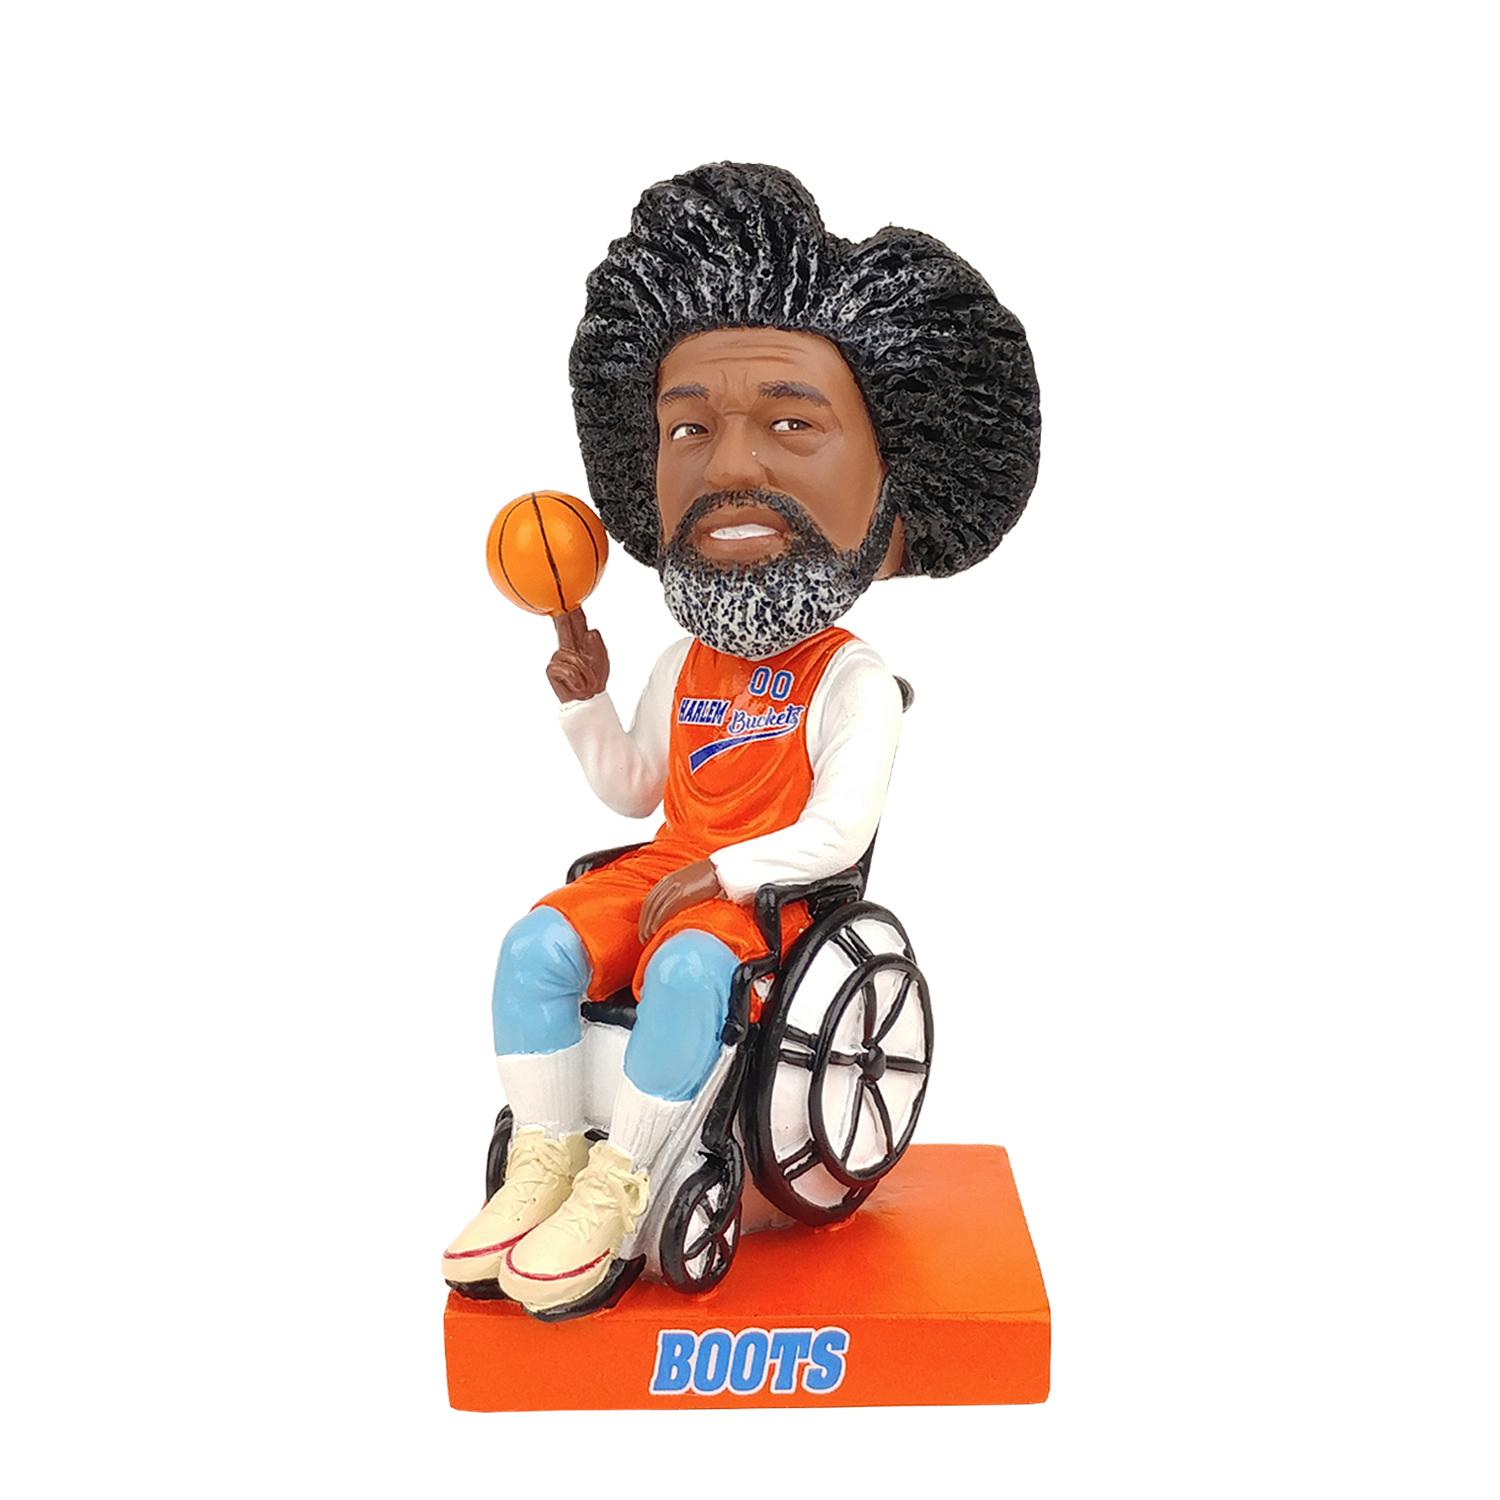 Boots Bobblehead Gallery